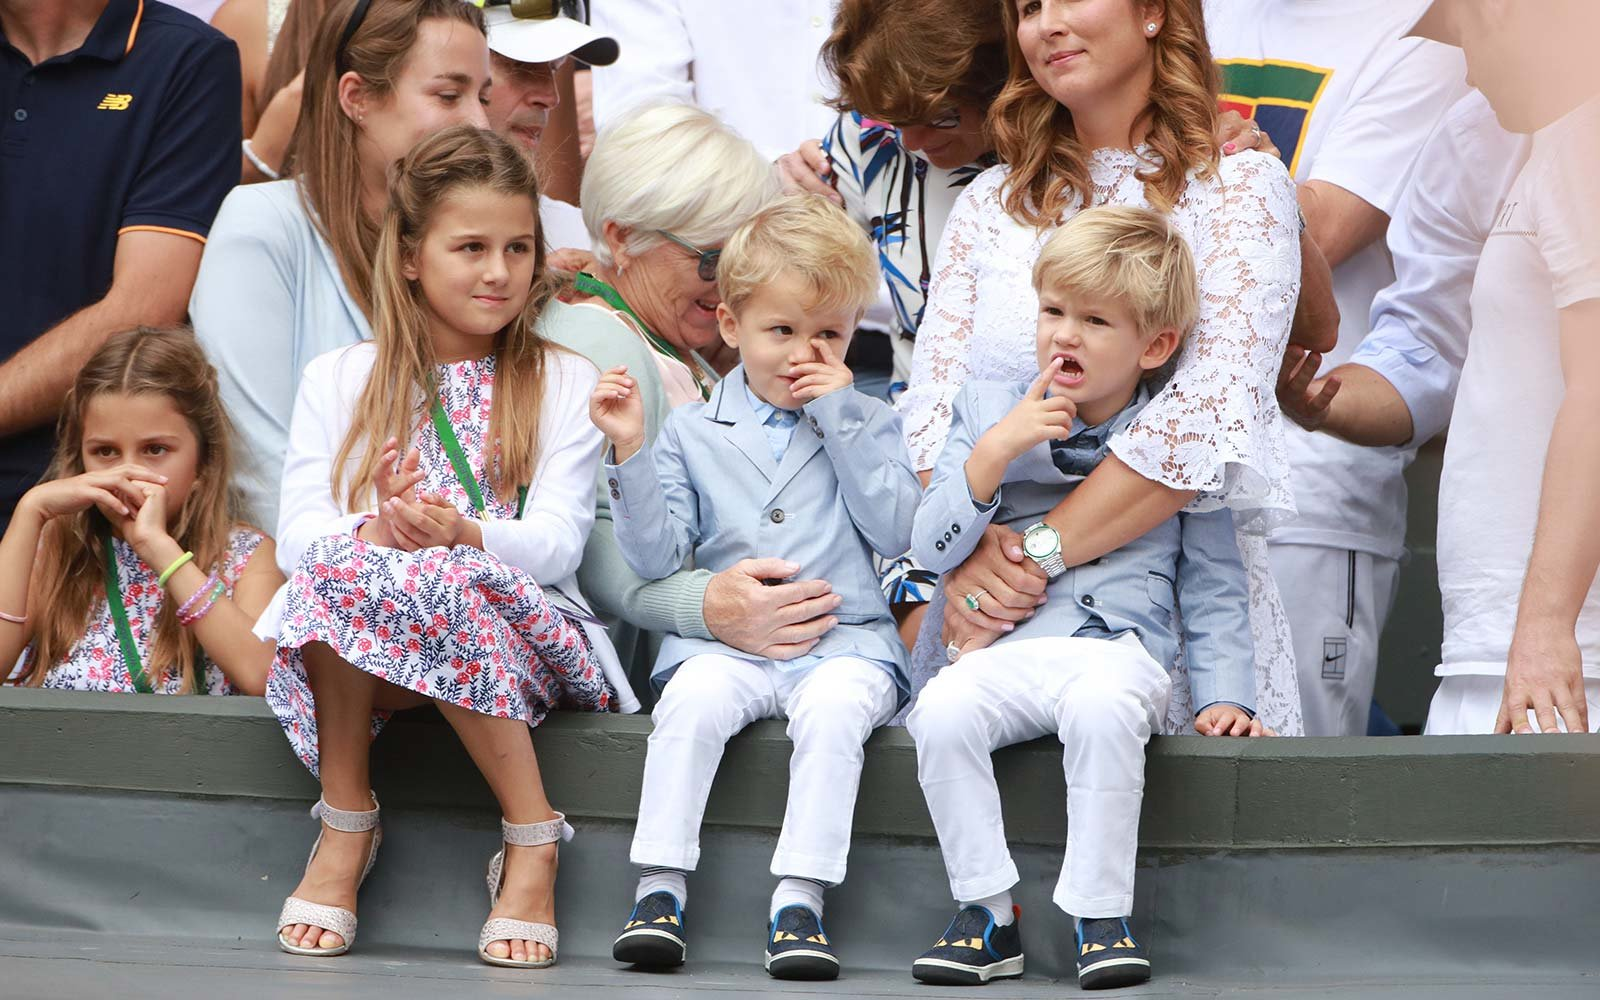 Roger and Mirka Federer with their Twin daughter